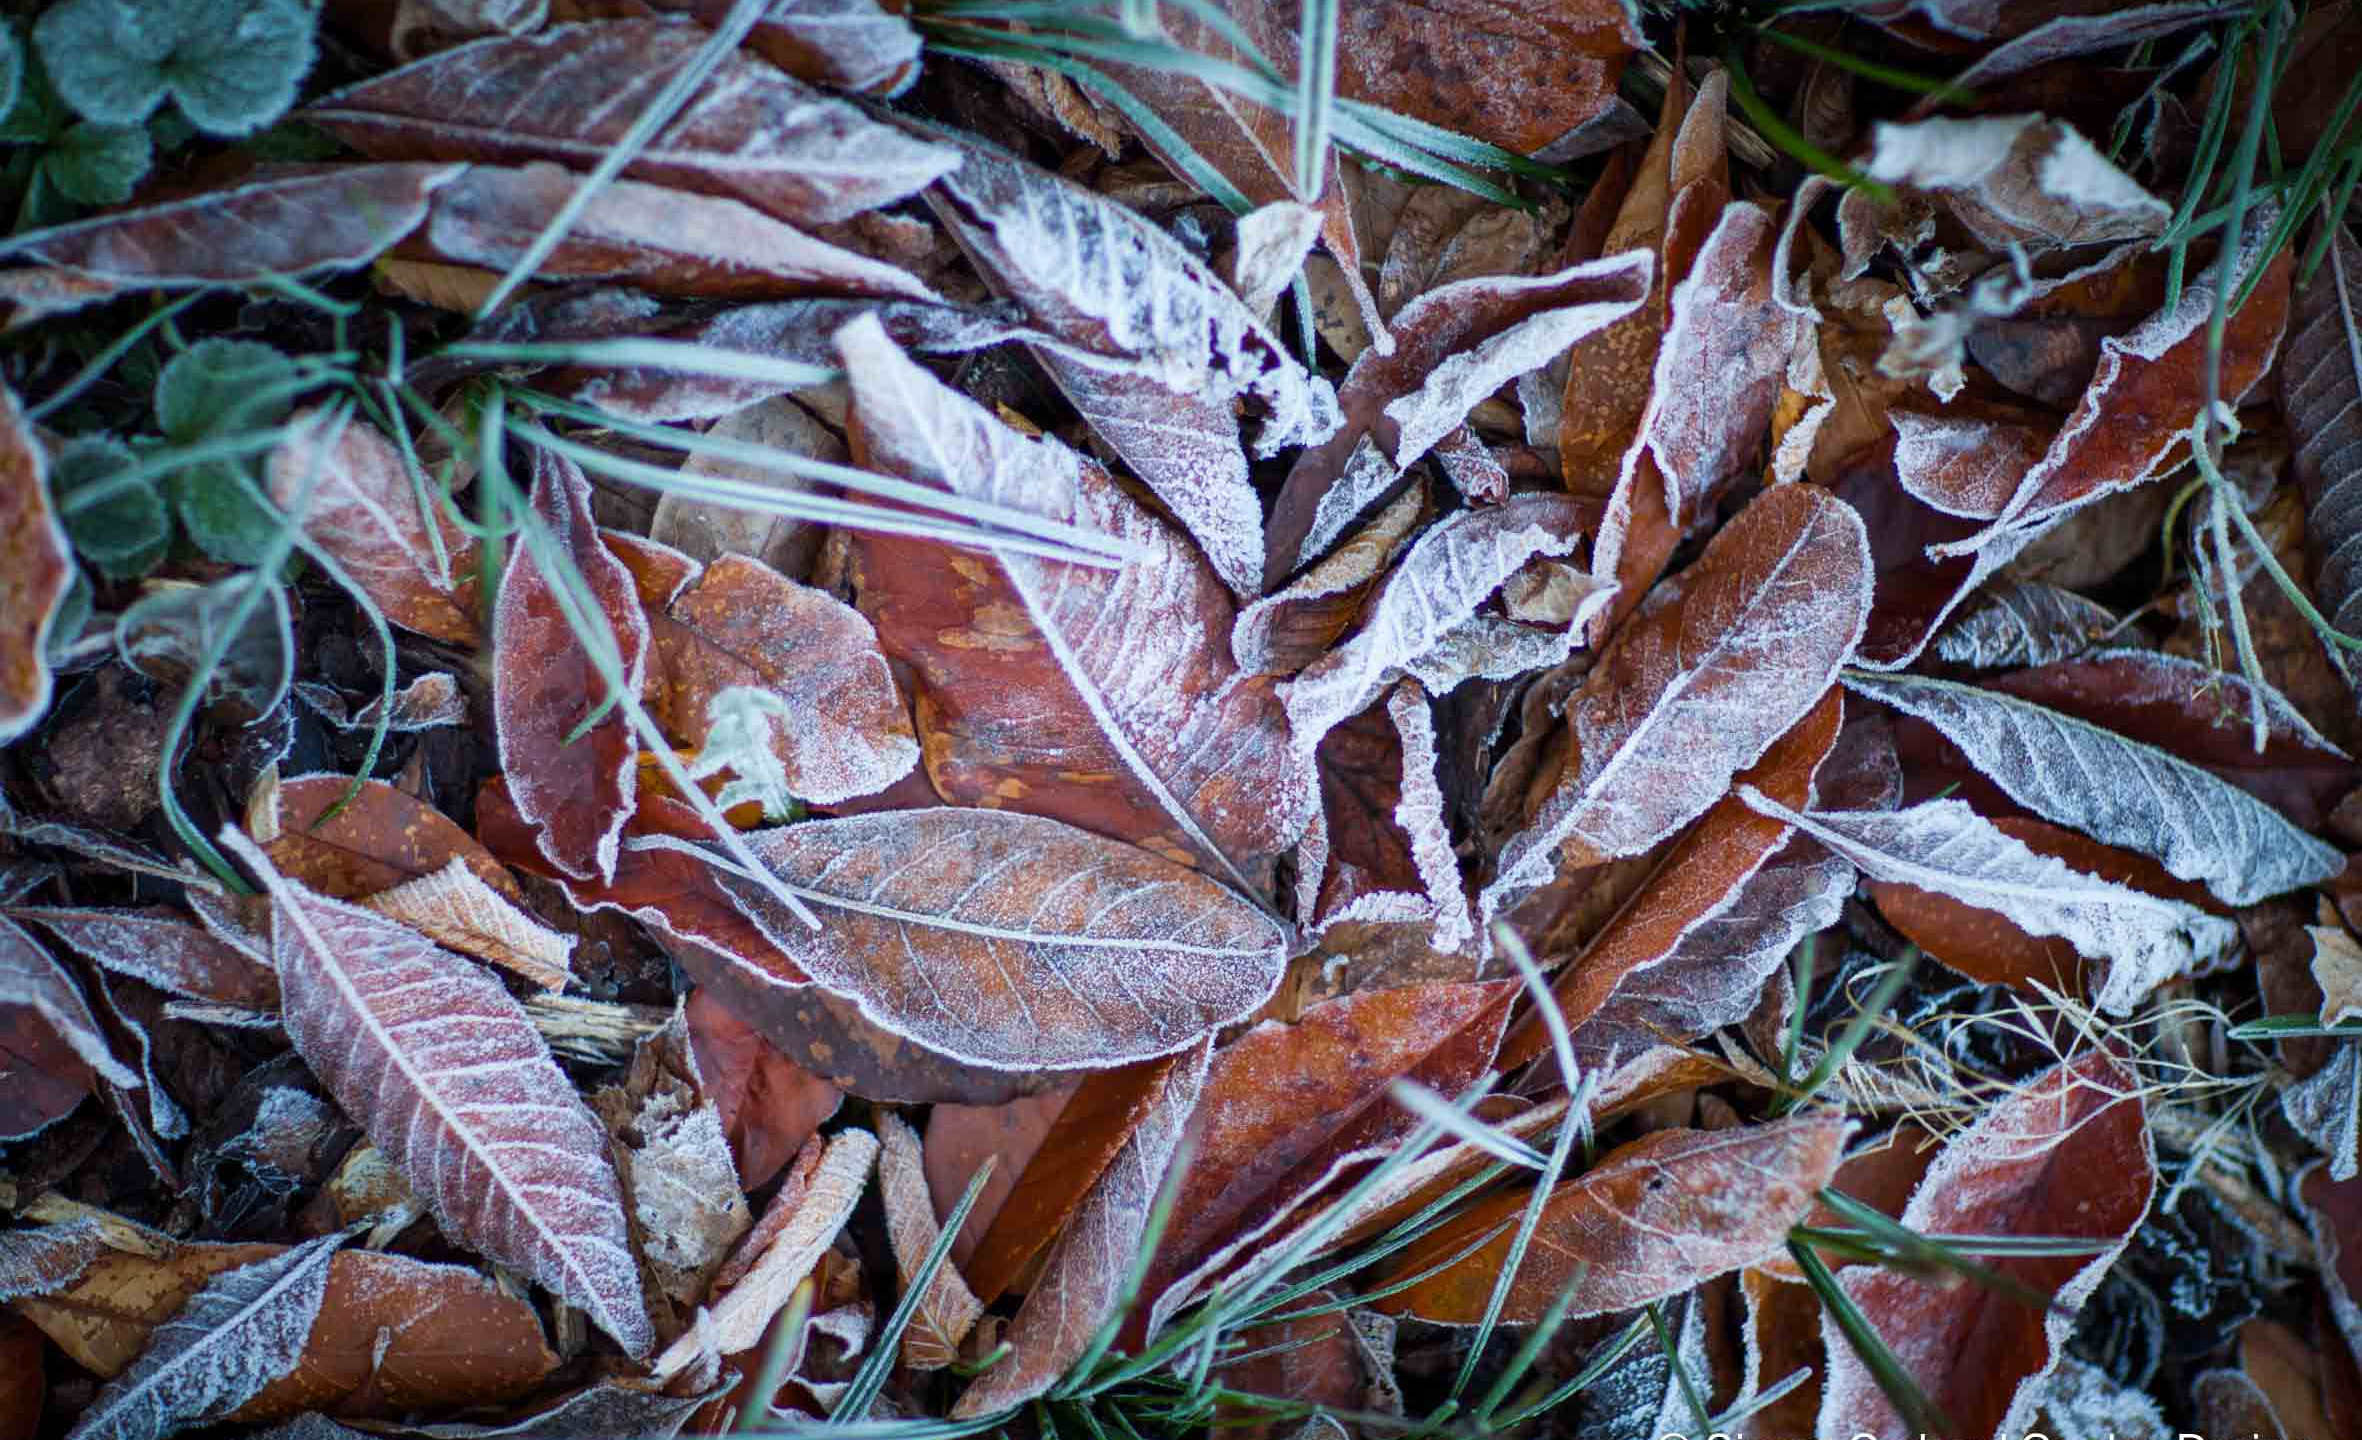 Leaves with hoar frost